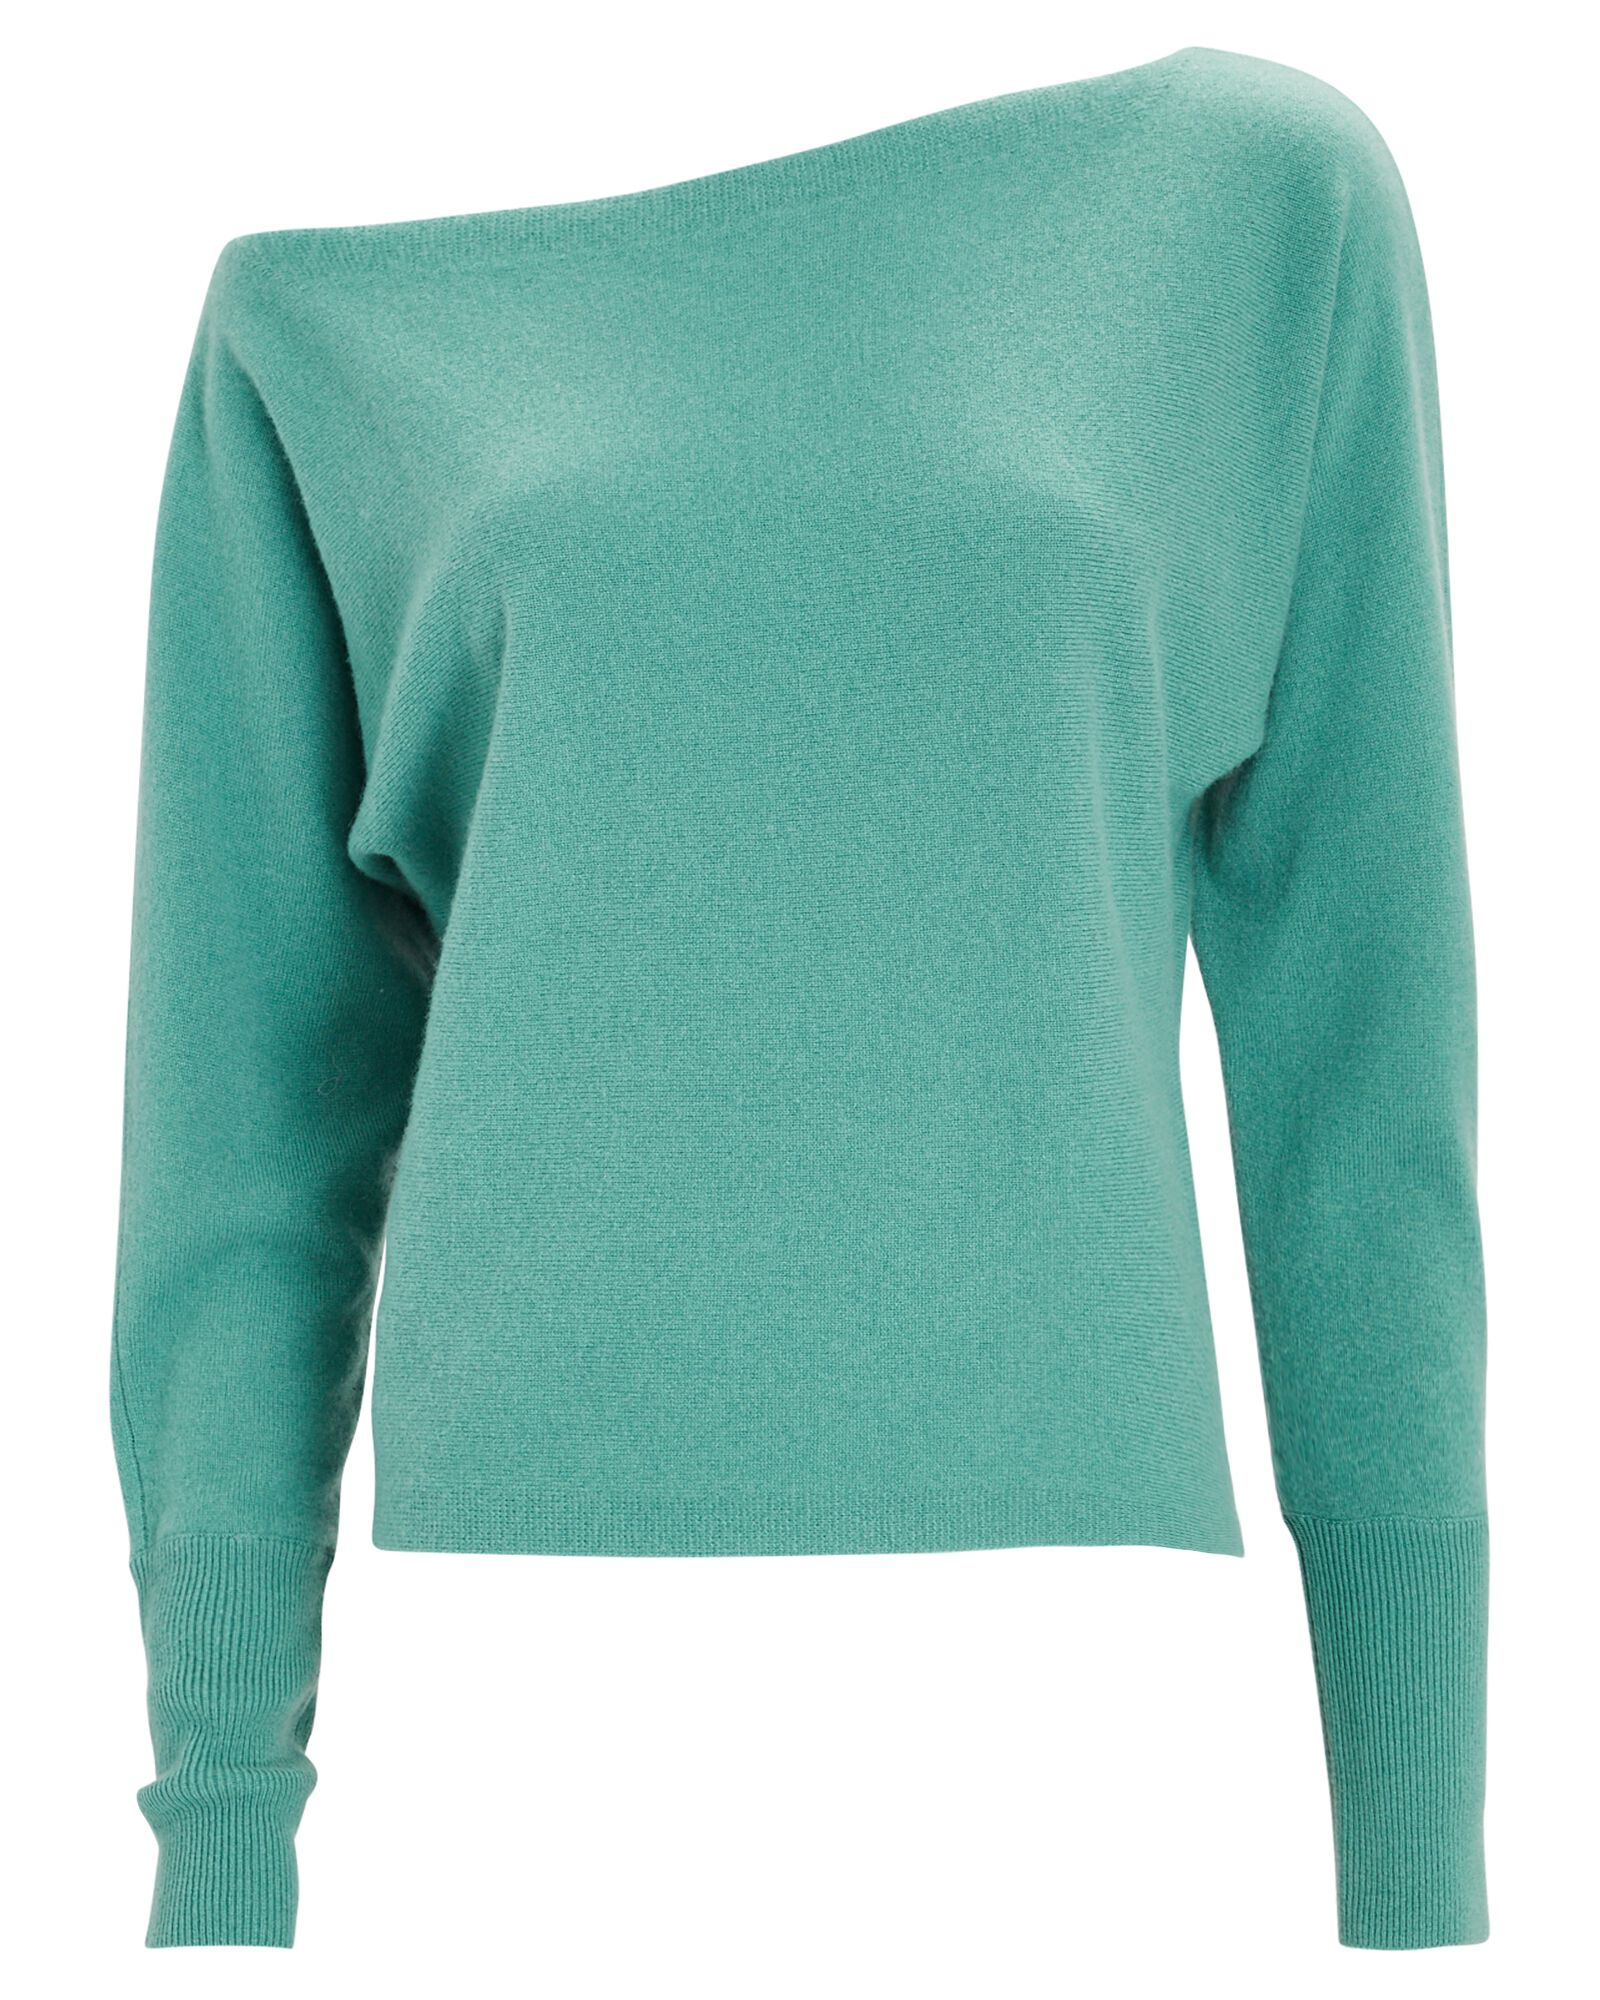 Reese Off-The-Shoulder Sweater, GREEN, hi-res